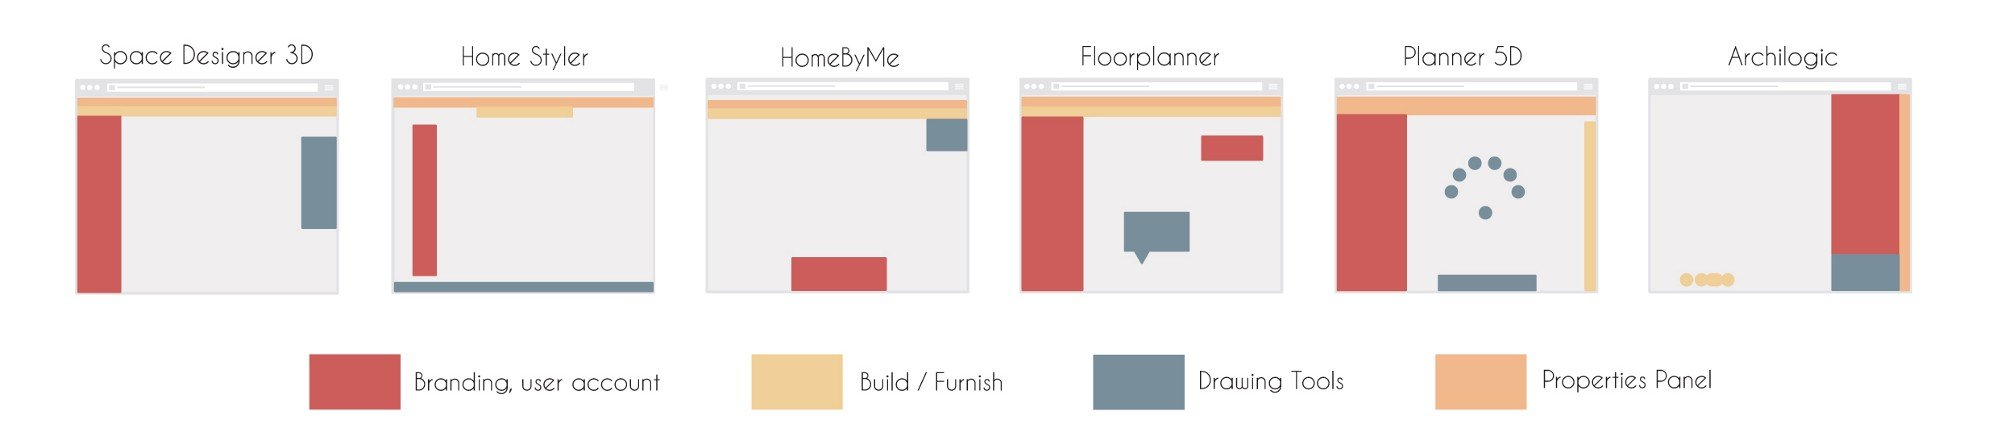 Free Downloadable Home Design Software